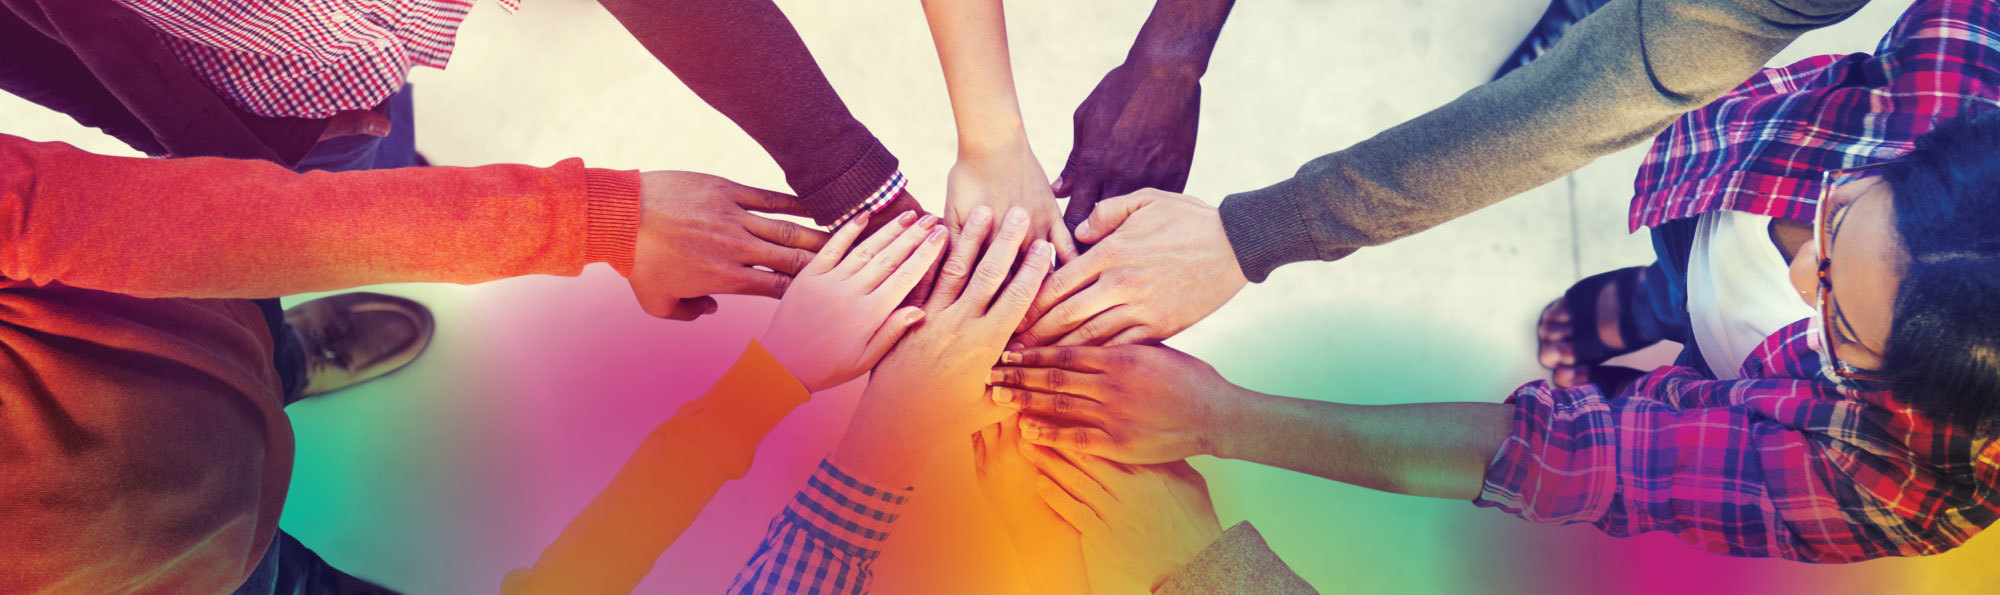 Team hands in a circle